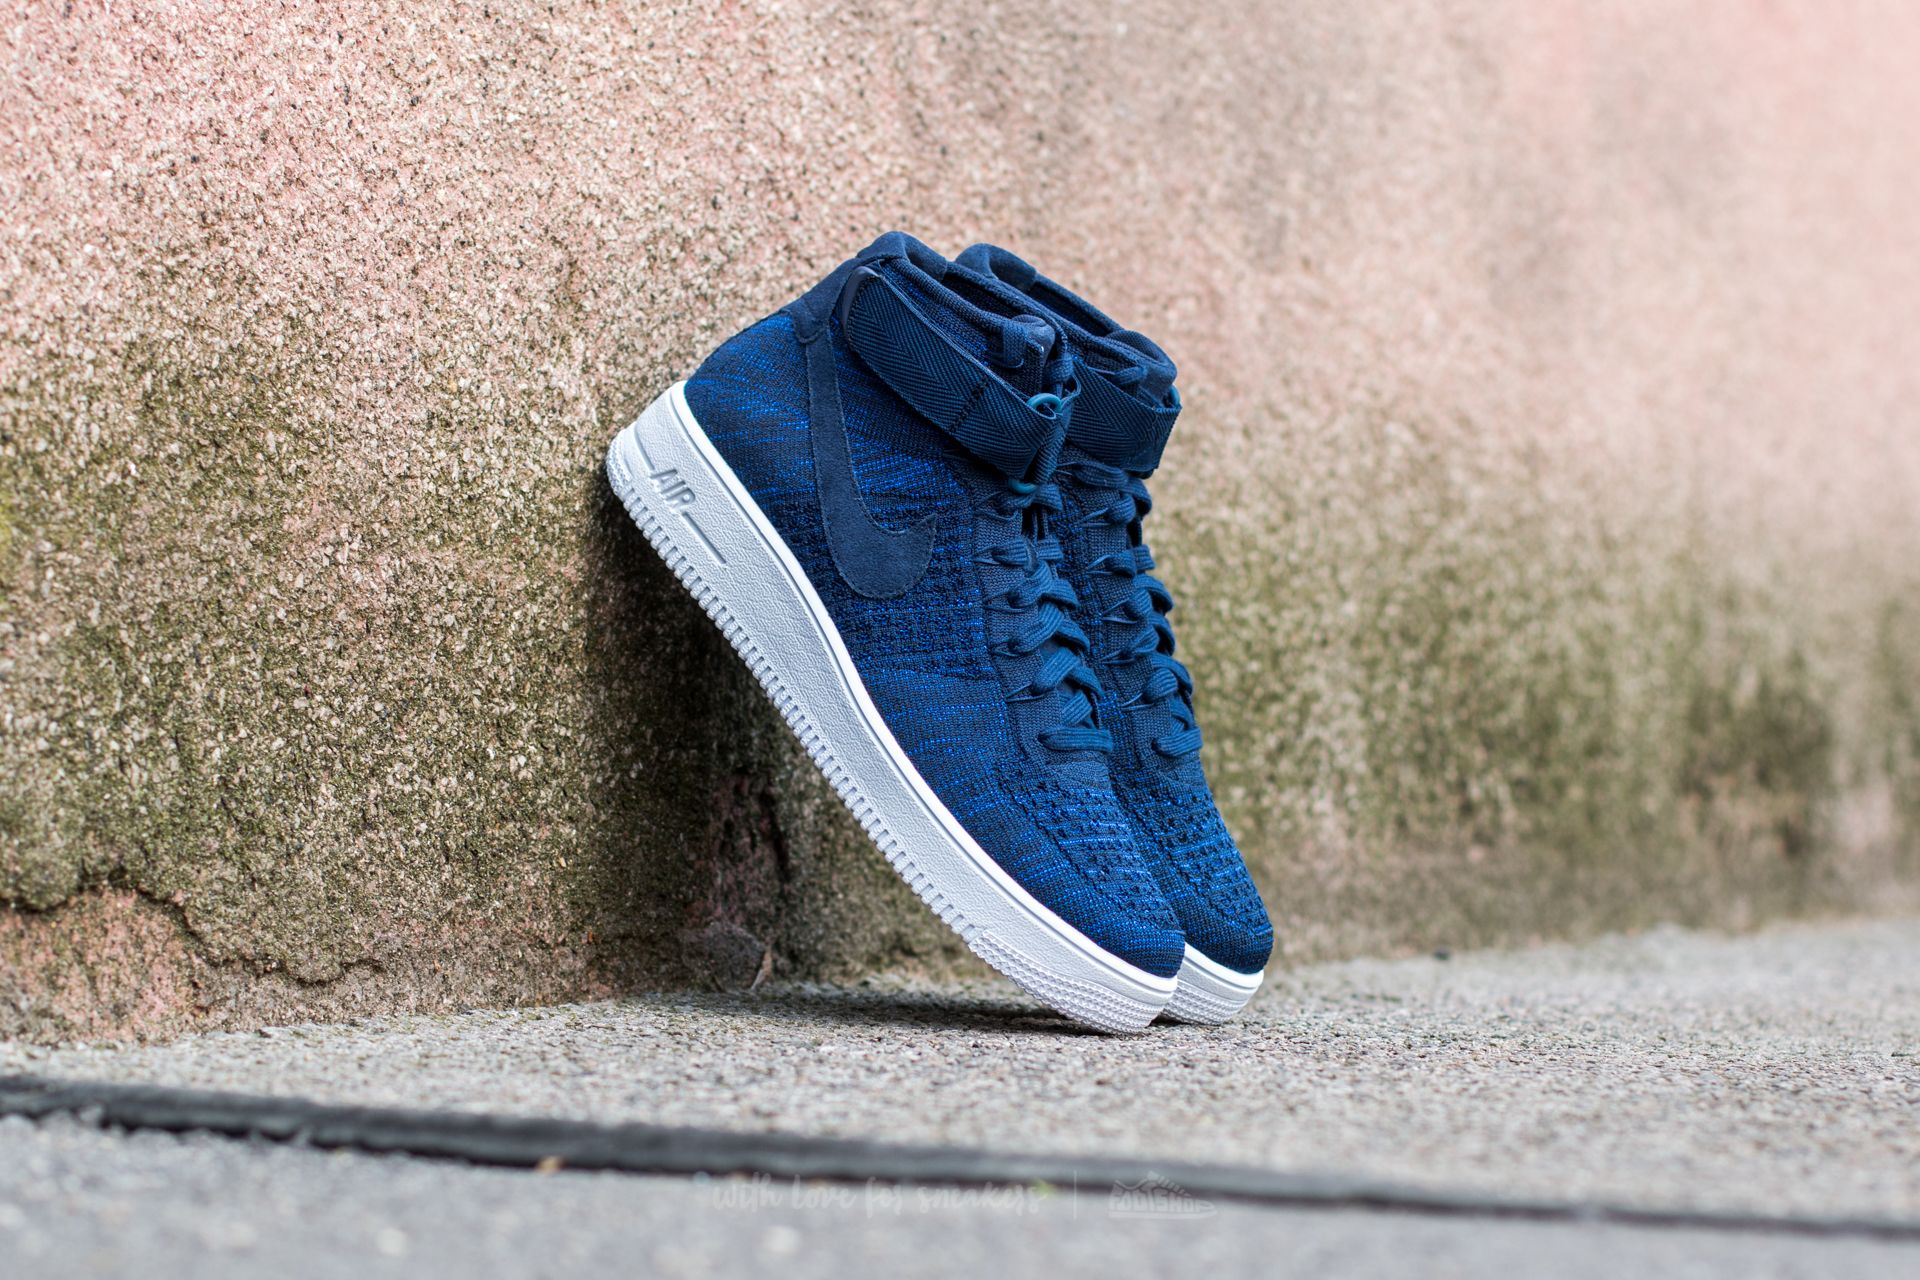 446e6e2255d75 Nike Air Force 1 Ultra Flyknit Mid College Navy  College Navy